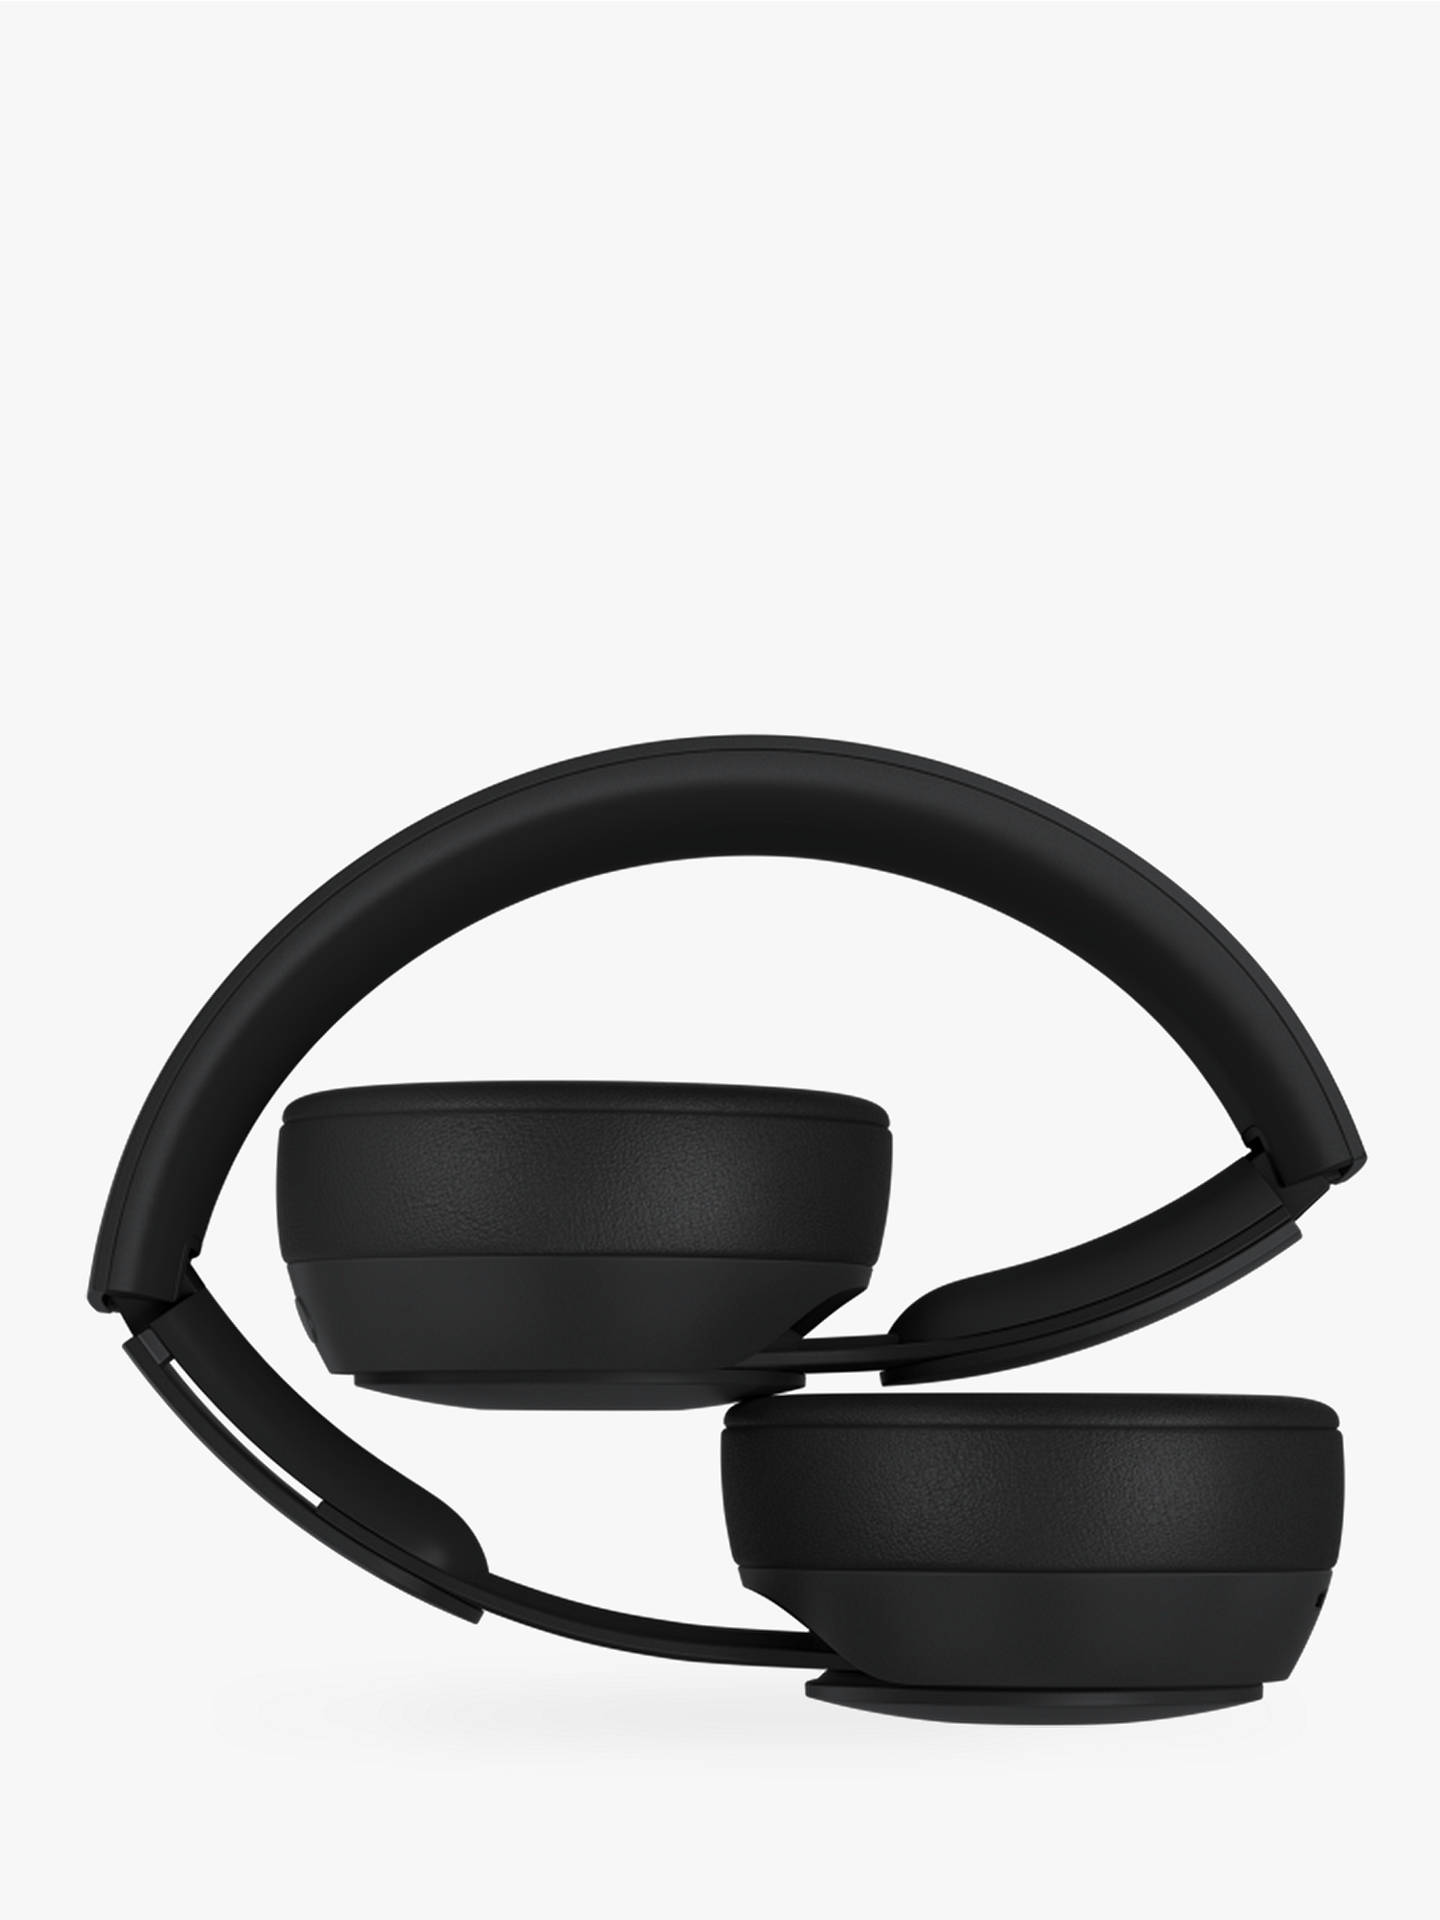 Buy Beats Solo Pro Wireless Bluetooth On-Ear Headphones with Active Noise Cancelling & Mic/Remote, Black Online at johnlewis.com